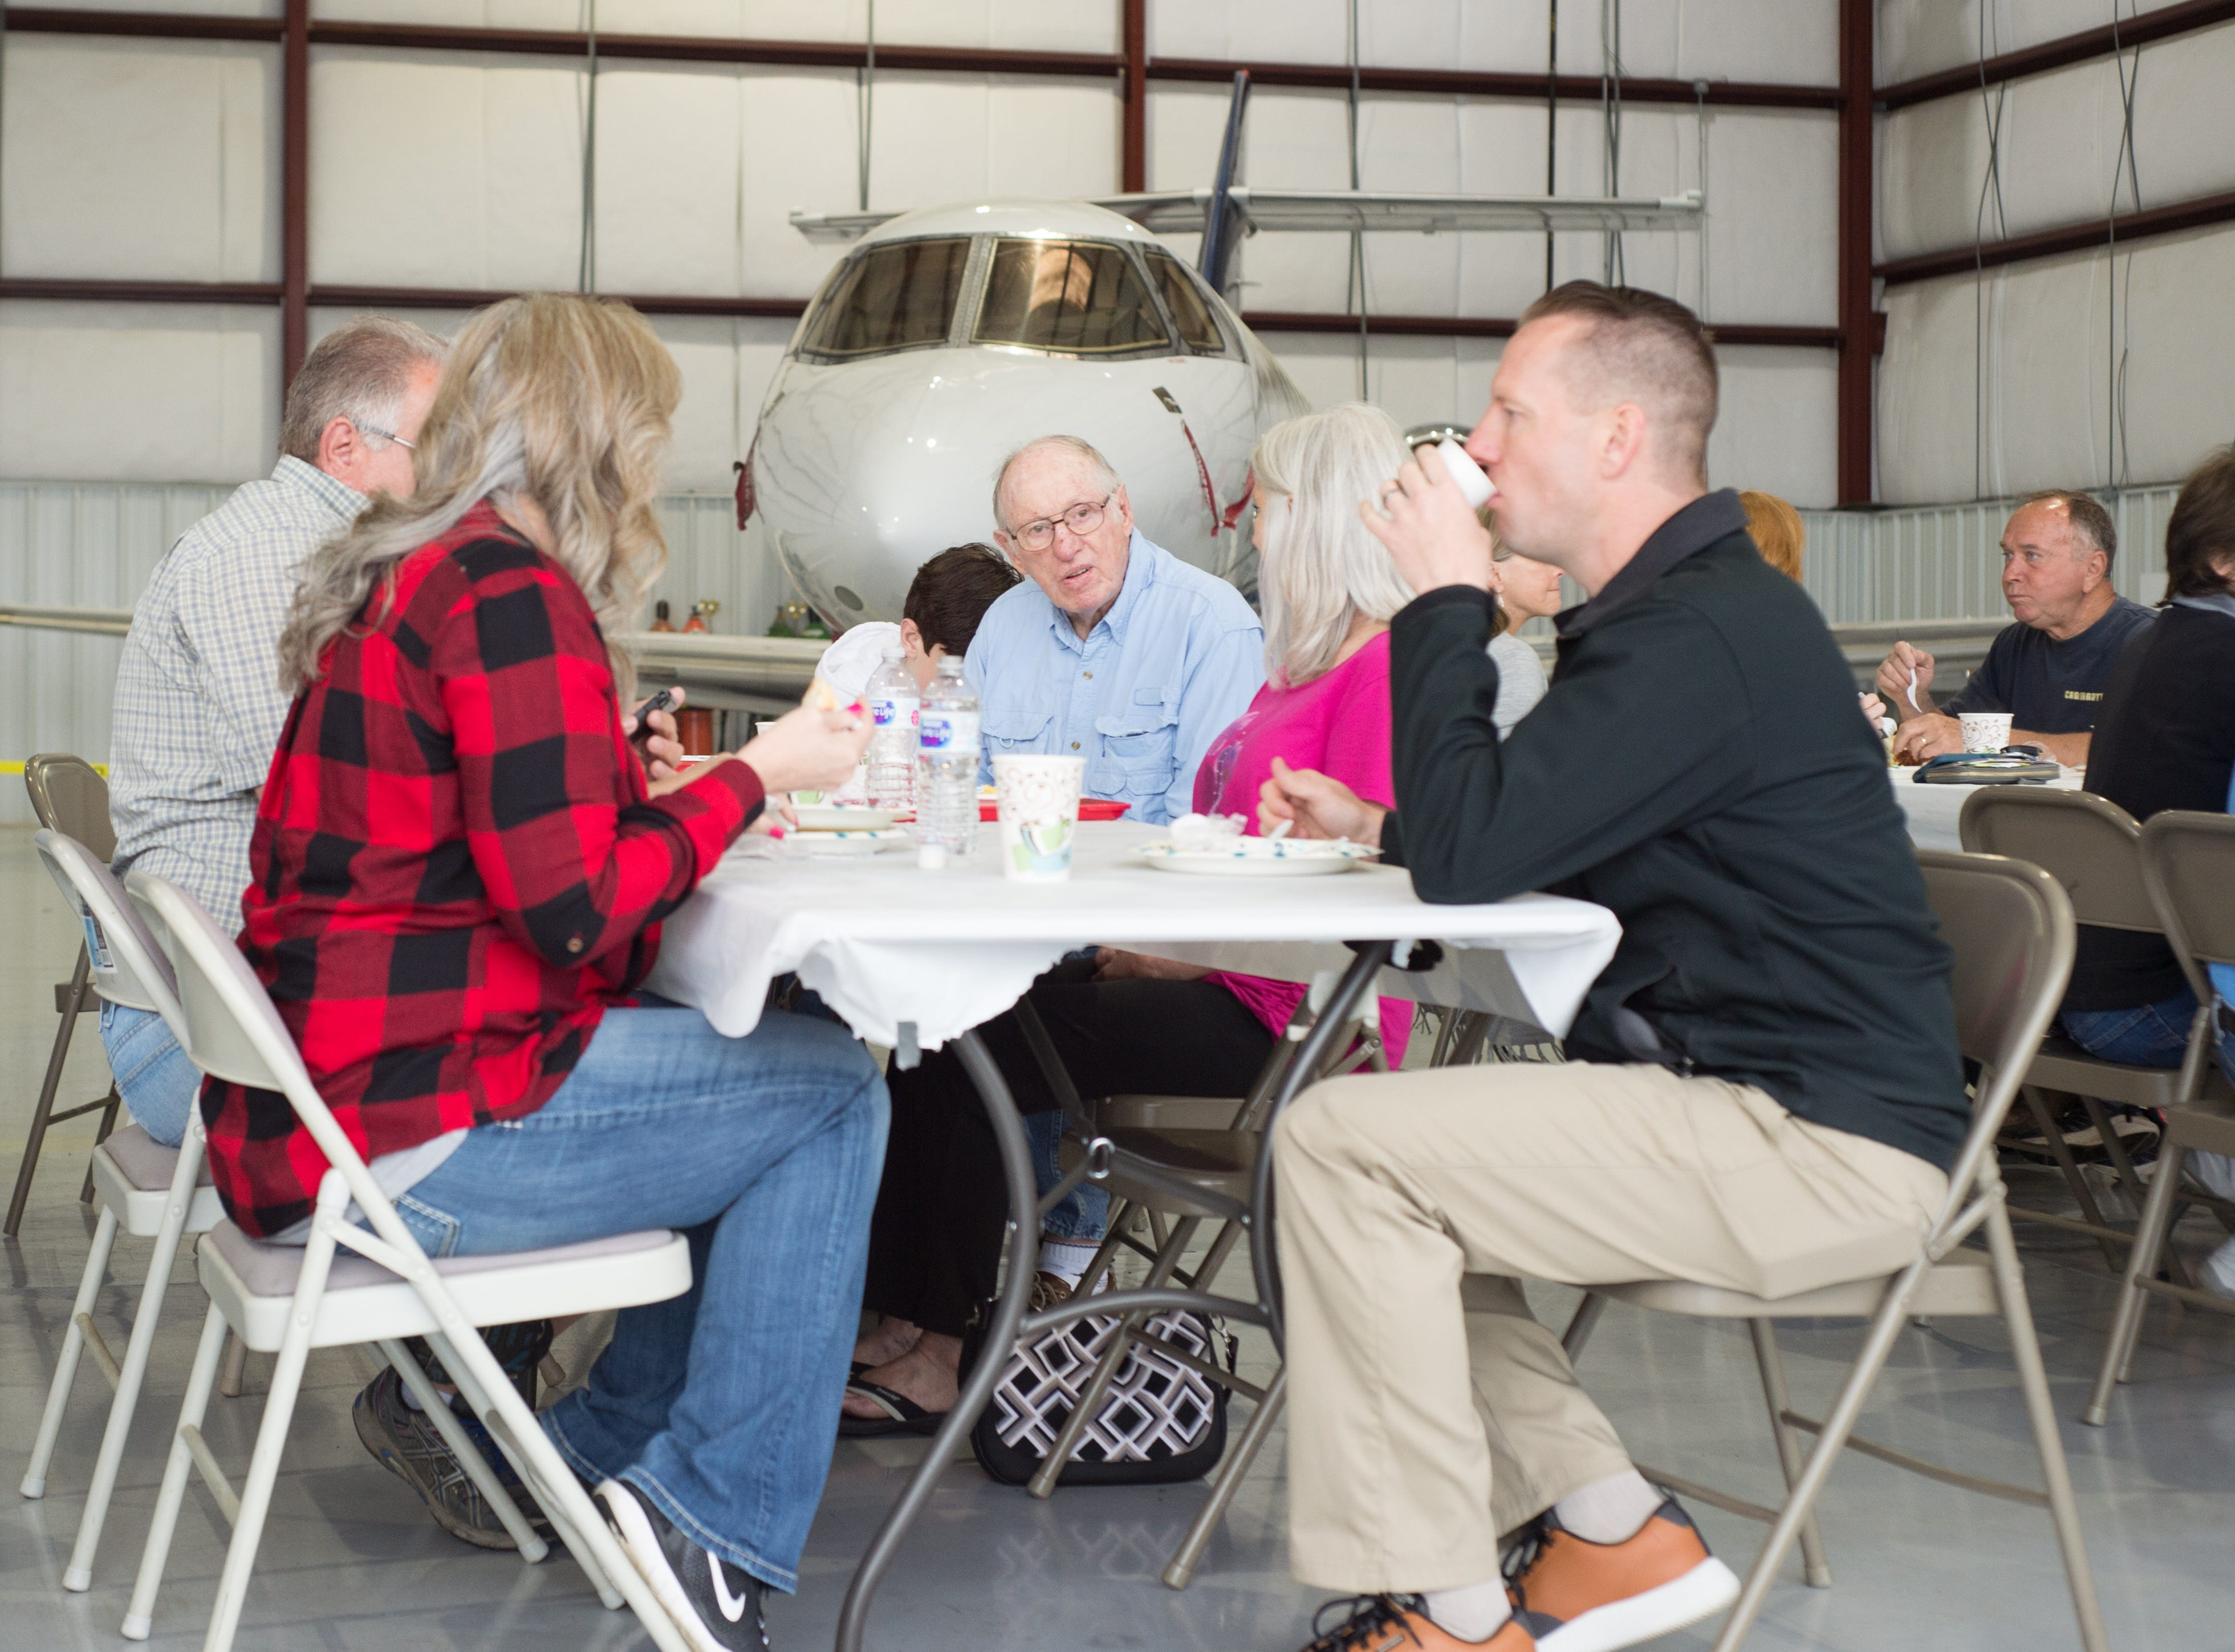 Attendees enjoy a Fly-In Breakfast at the Sumner County Regional Airport in Gallatin on Saturday, April 13.